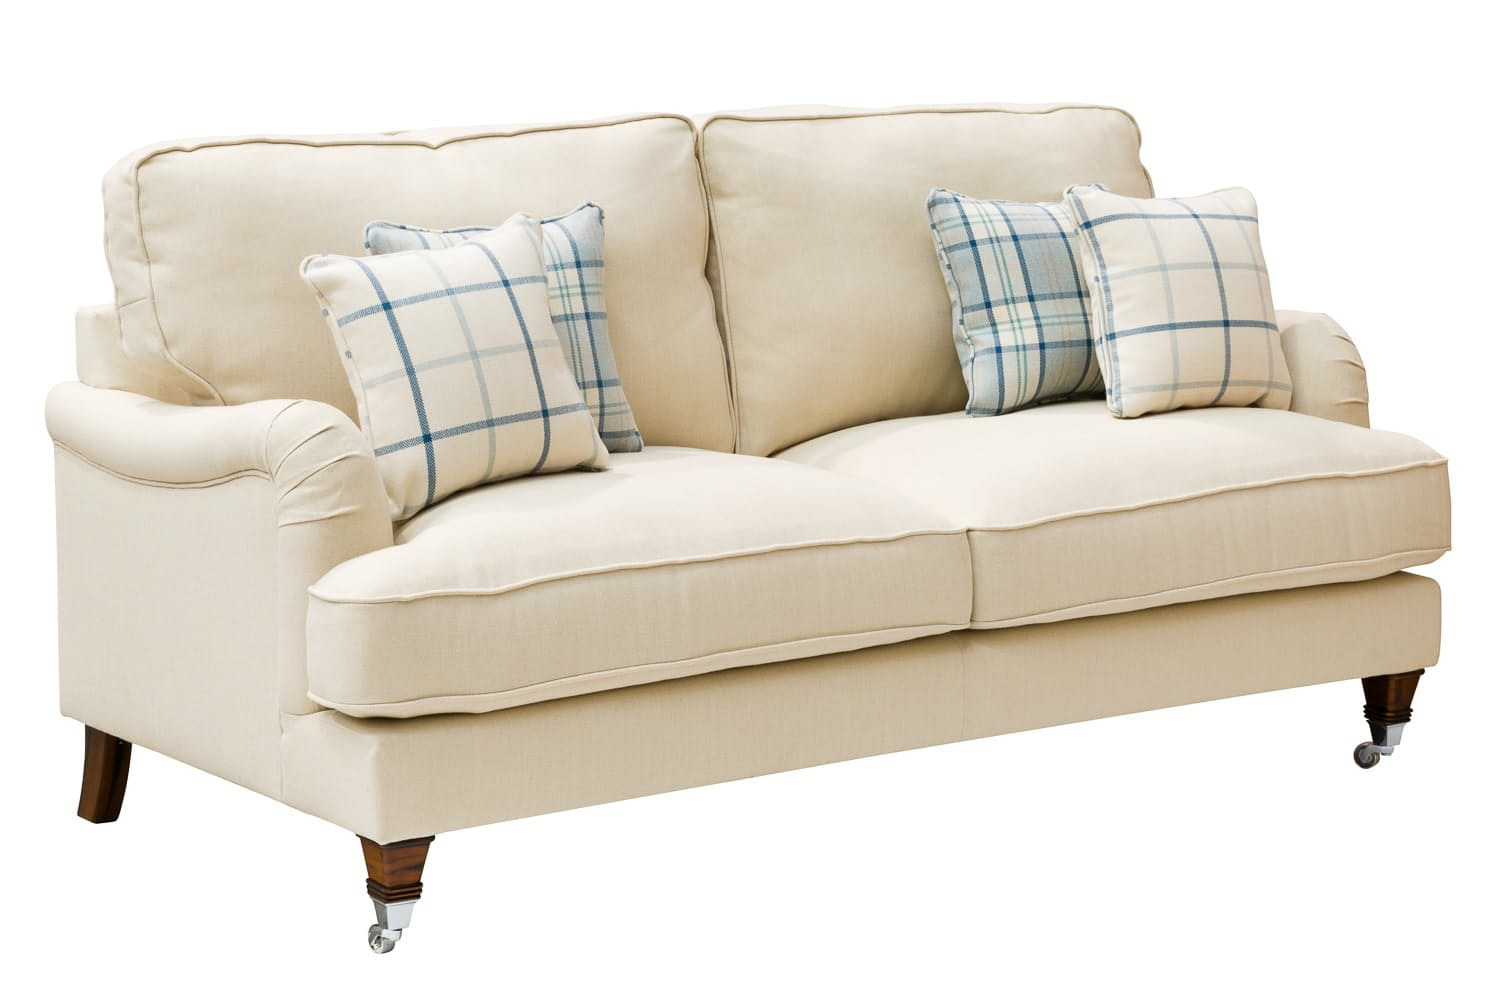 Helvick 3 Seater Sofa | 16 Fabric Options